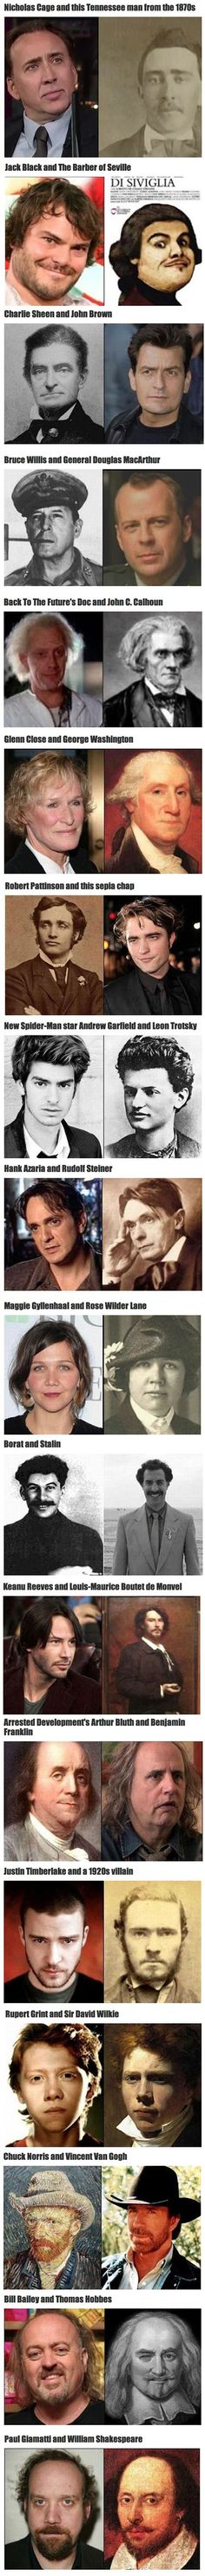 We have rounded up some historical figures and their famous celebrity doppelgangers.